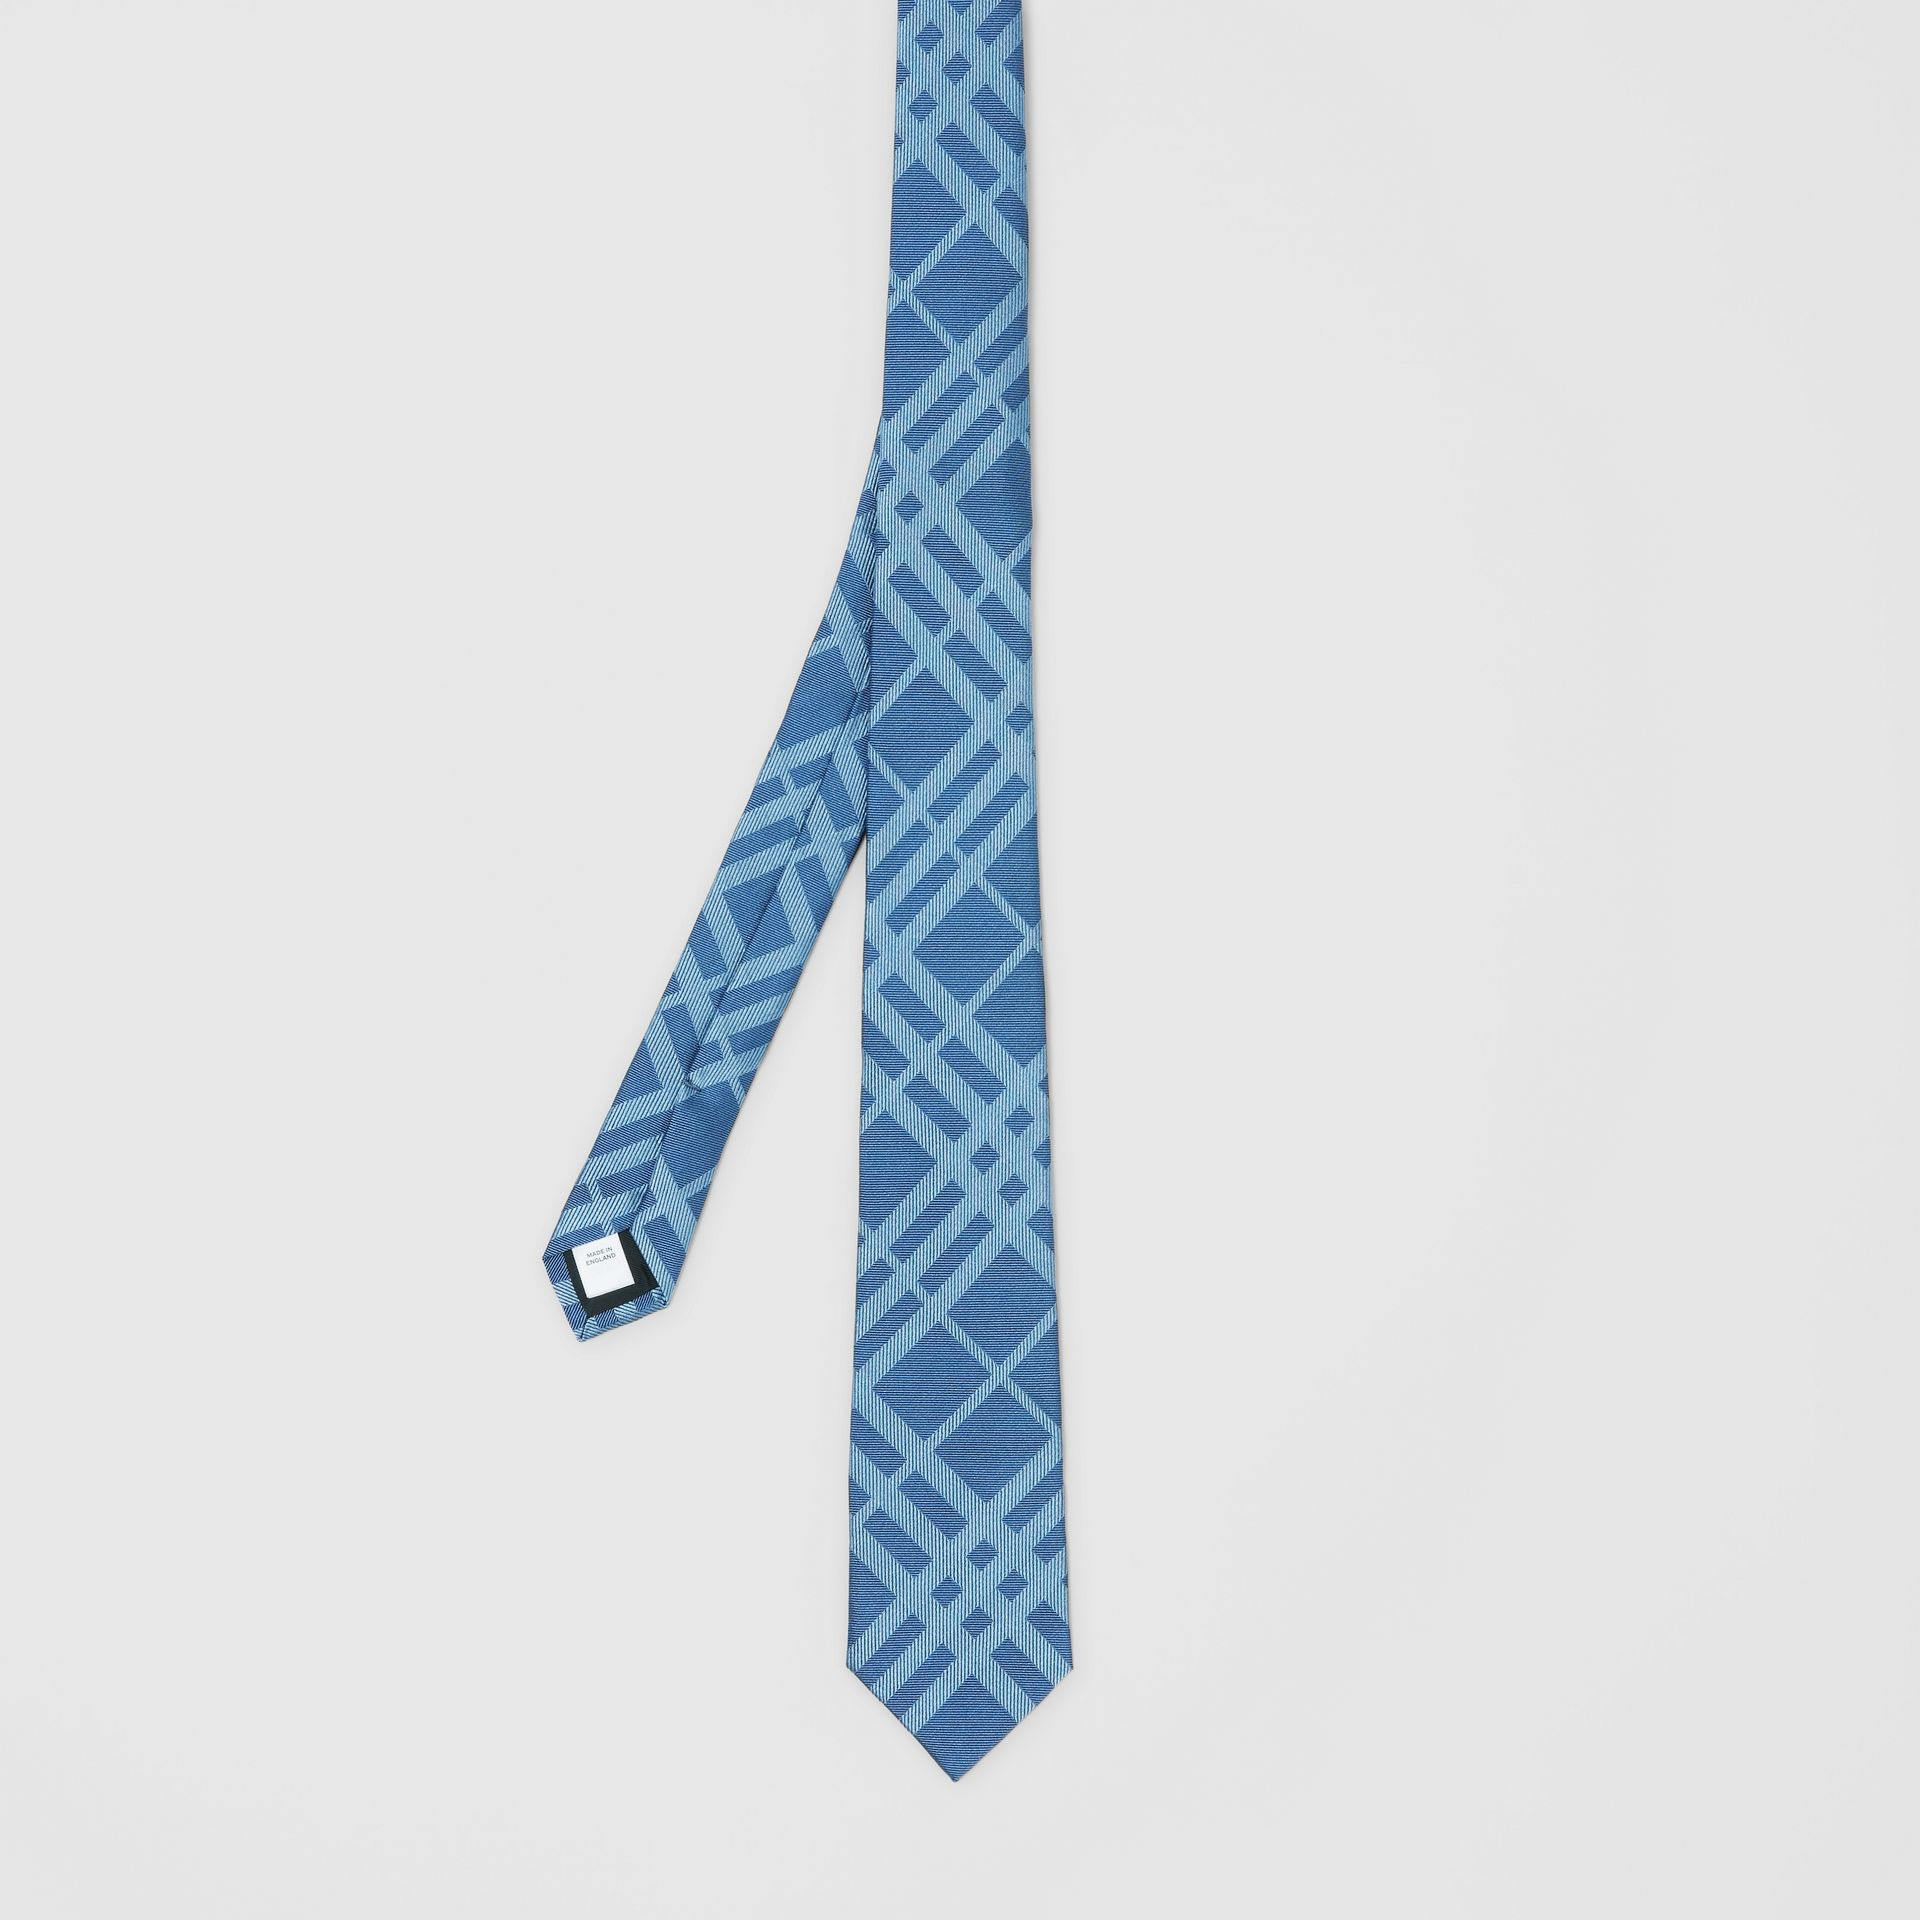 Classic Cut Check Silk Jacquard Tie in Blue Topaz - Men | Burberry - gallery image 4